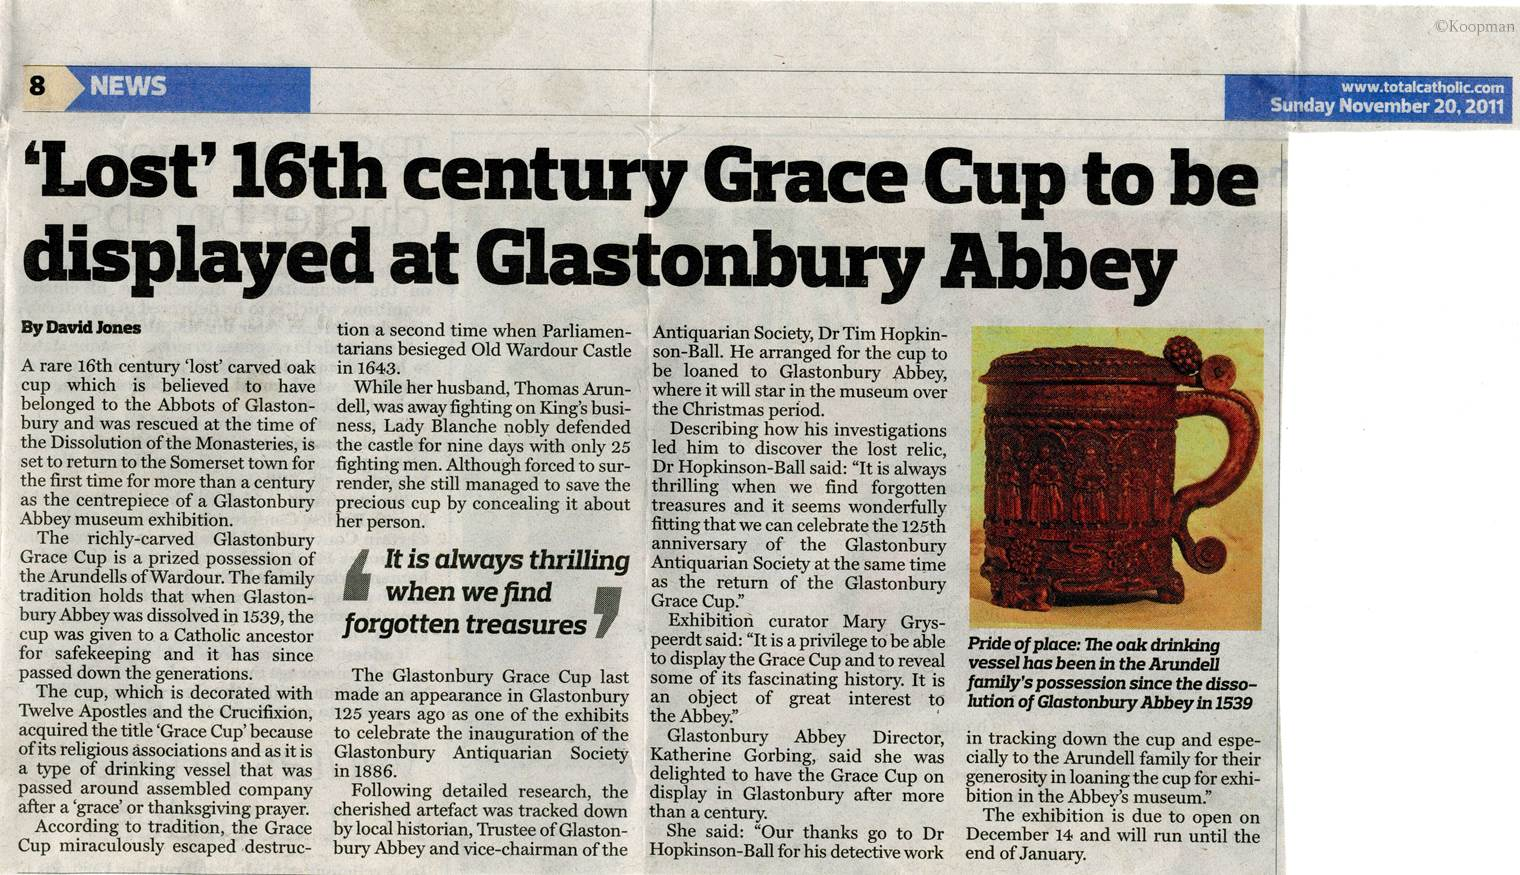 The Glastonbury Cup